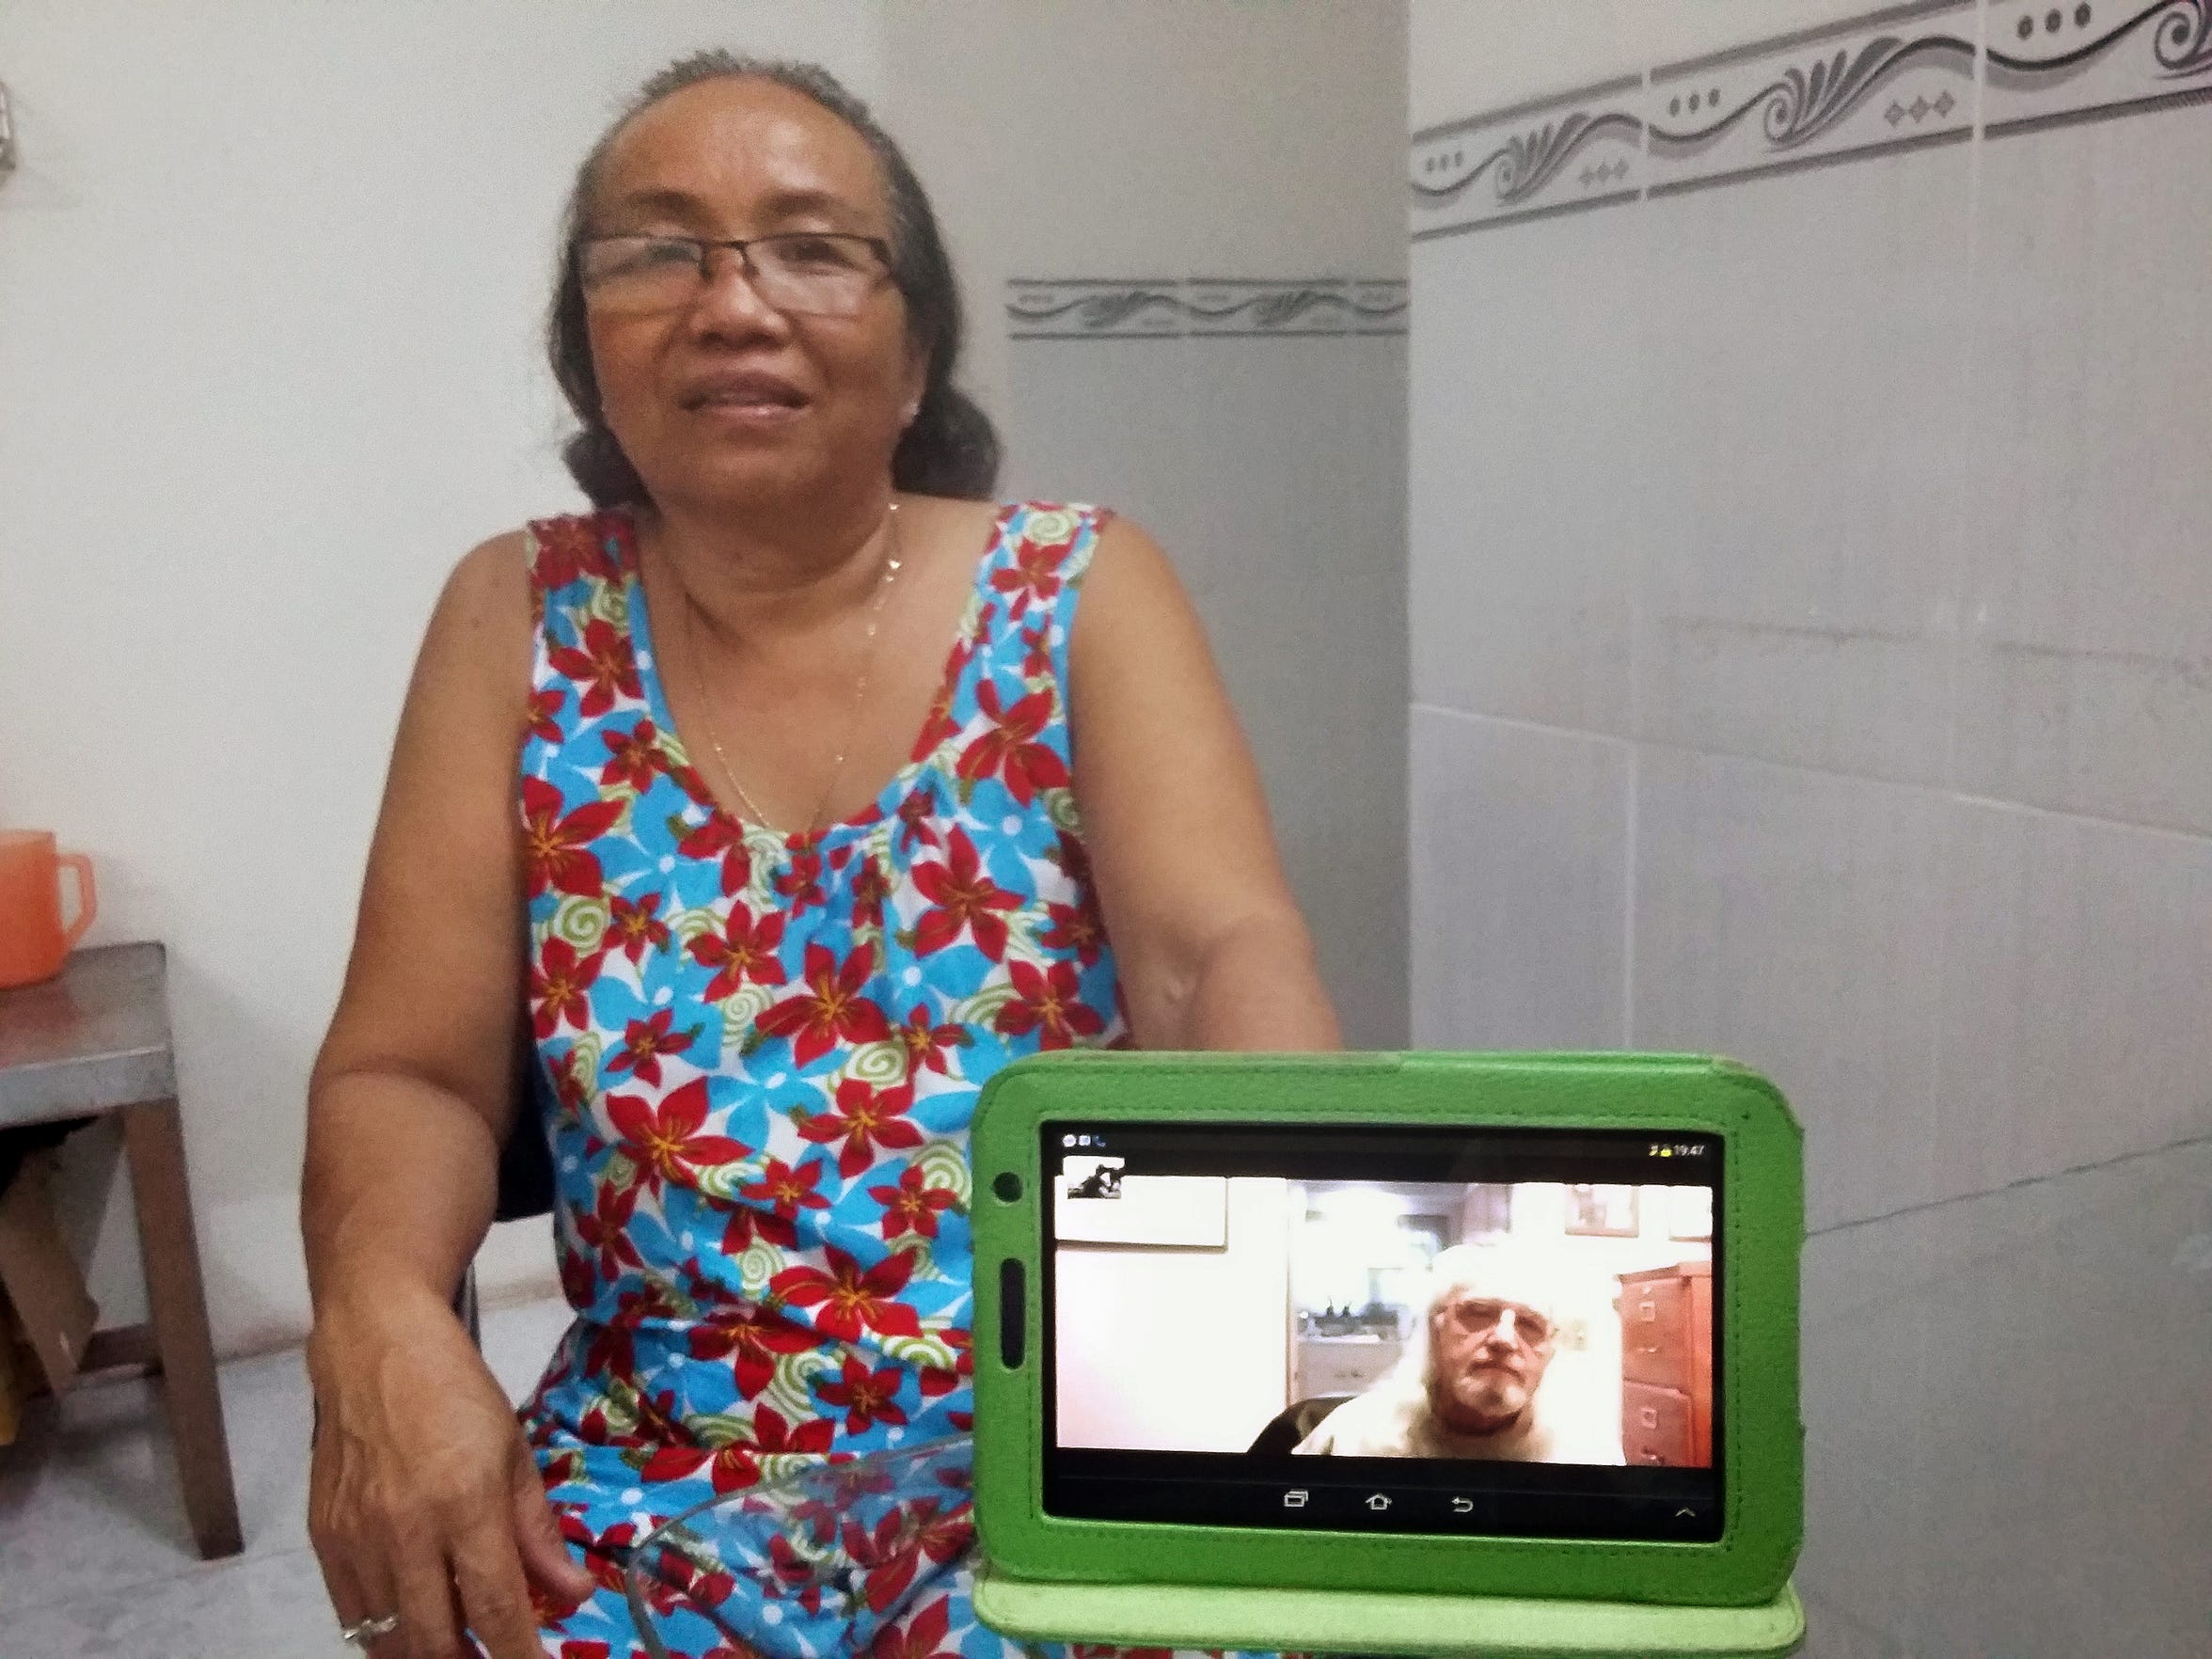 From her home in Vietnam, Kim Hoa uses a Skype-like program to communicate with Jim Reischl in St. Cloud.